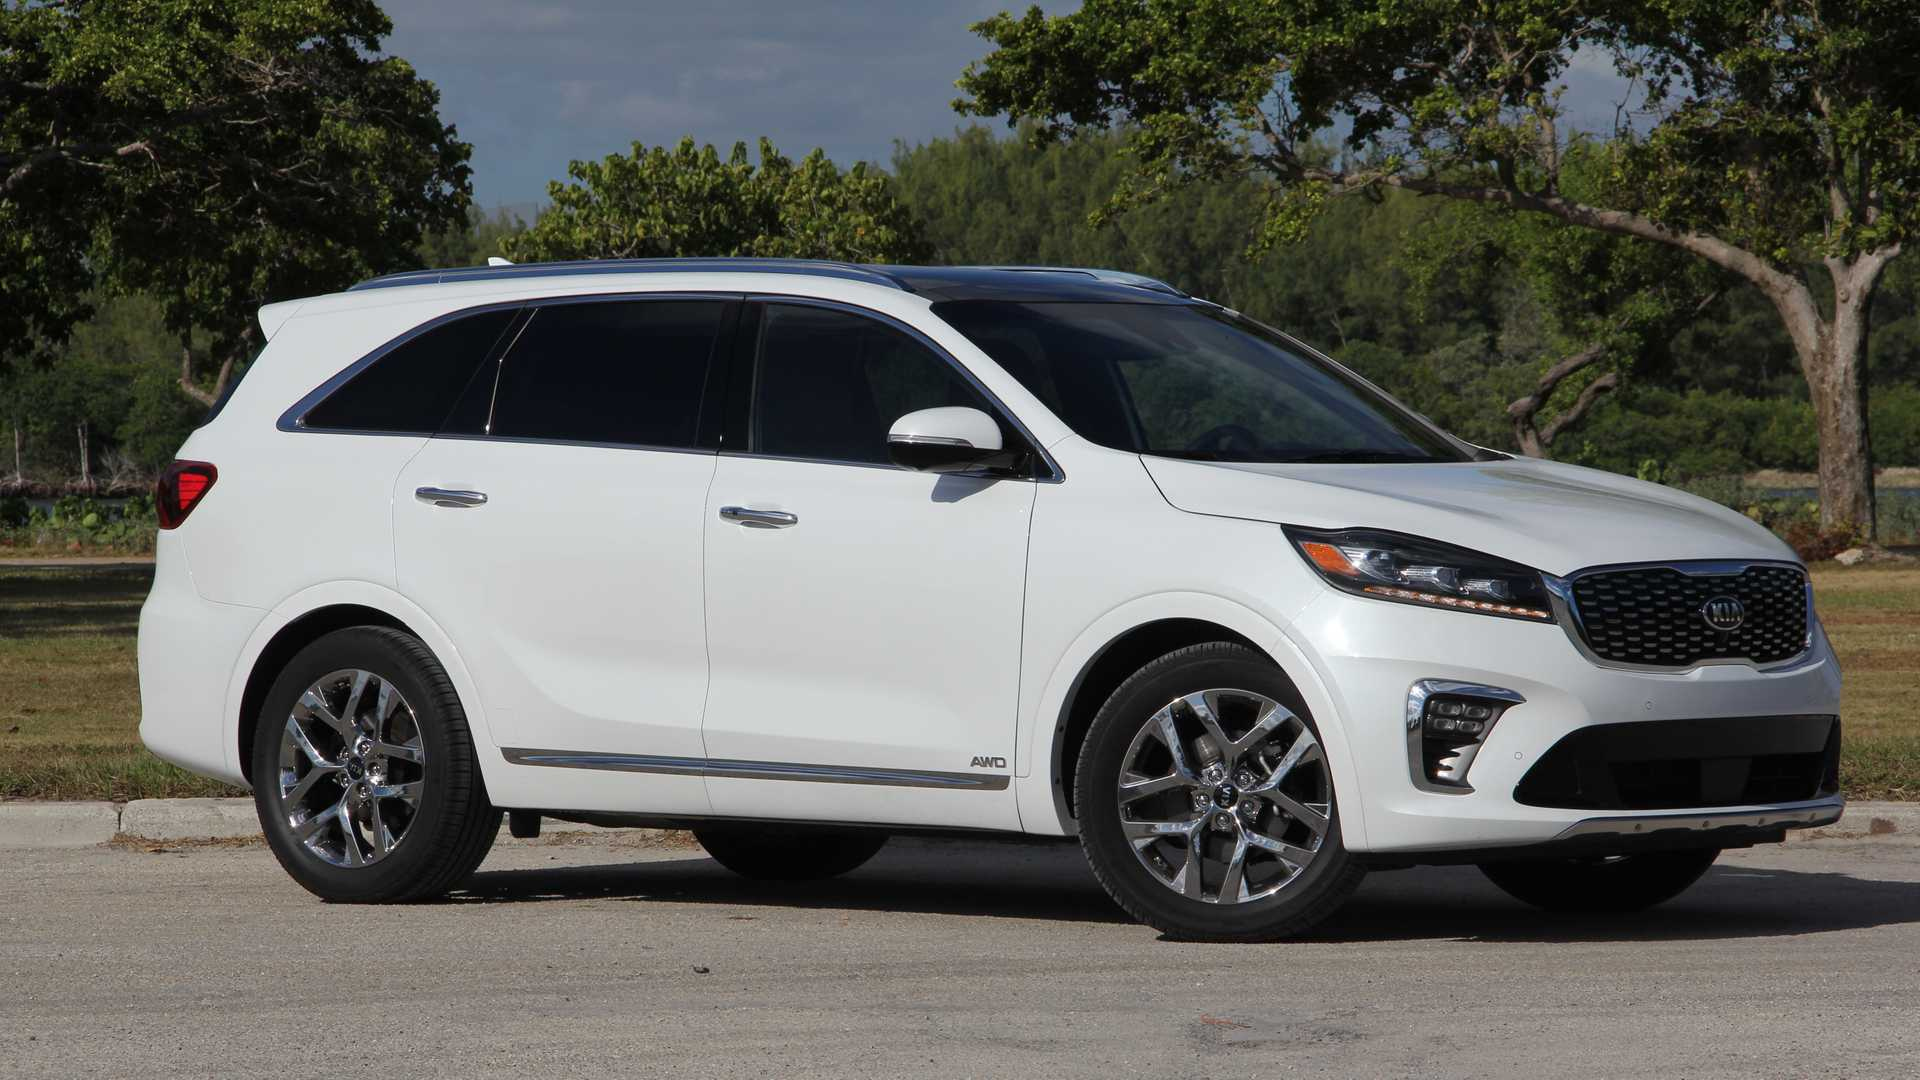 93 The Best 2019 Kia Sorento Review Speed Test